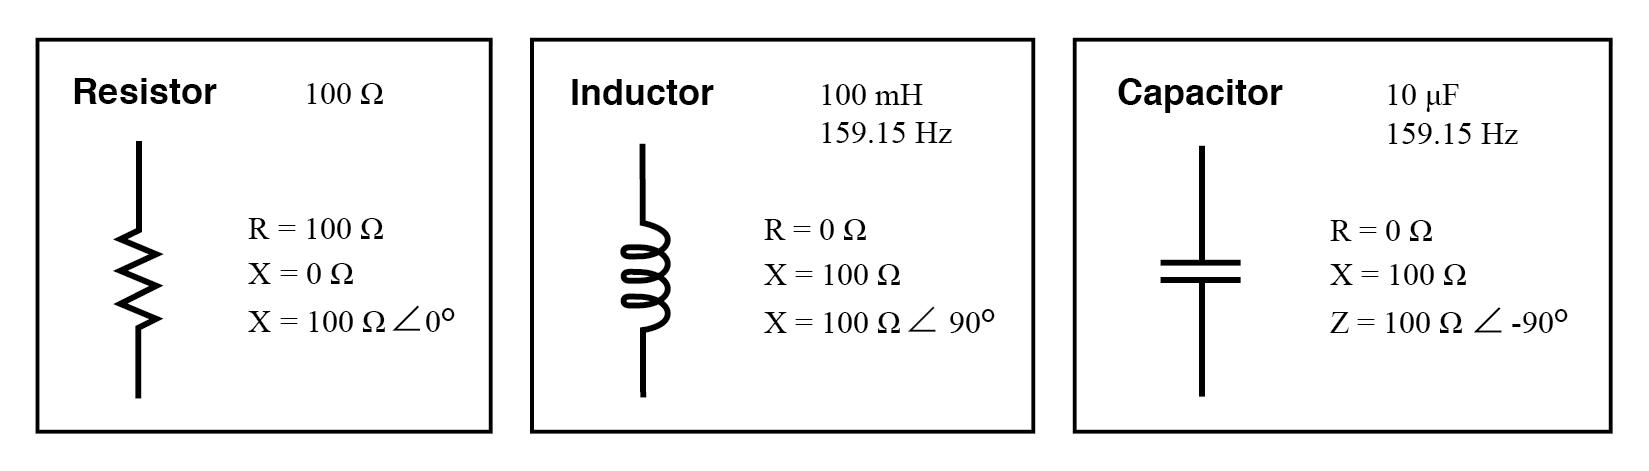 Perfect resistor, inductor, and capacitor.